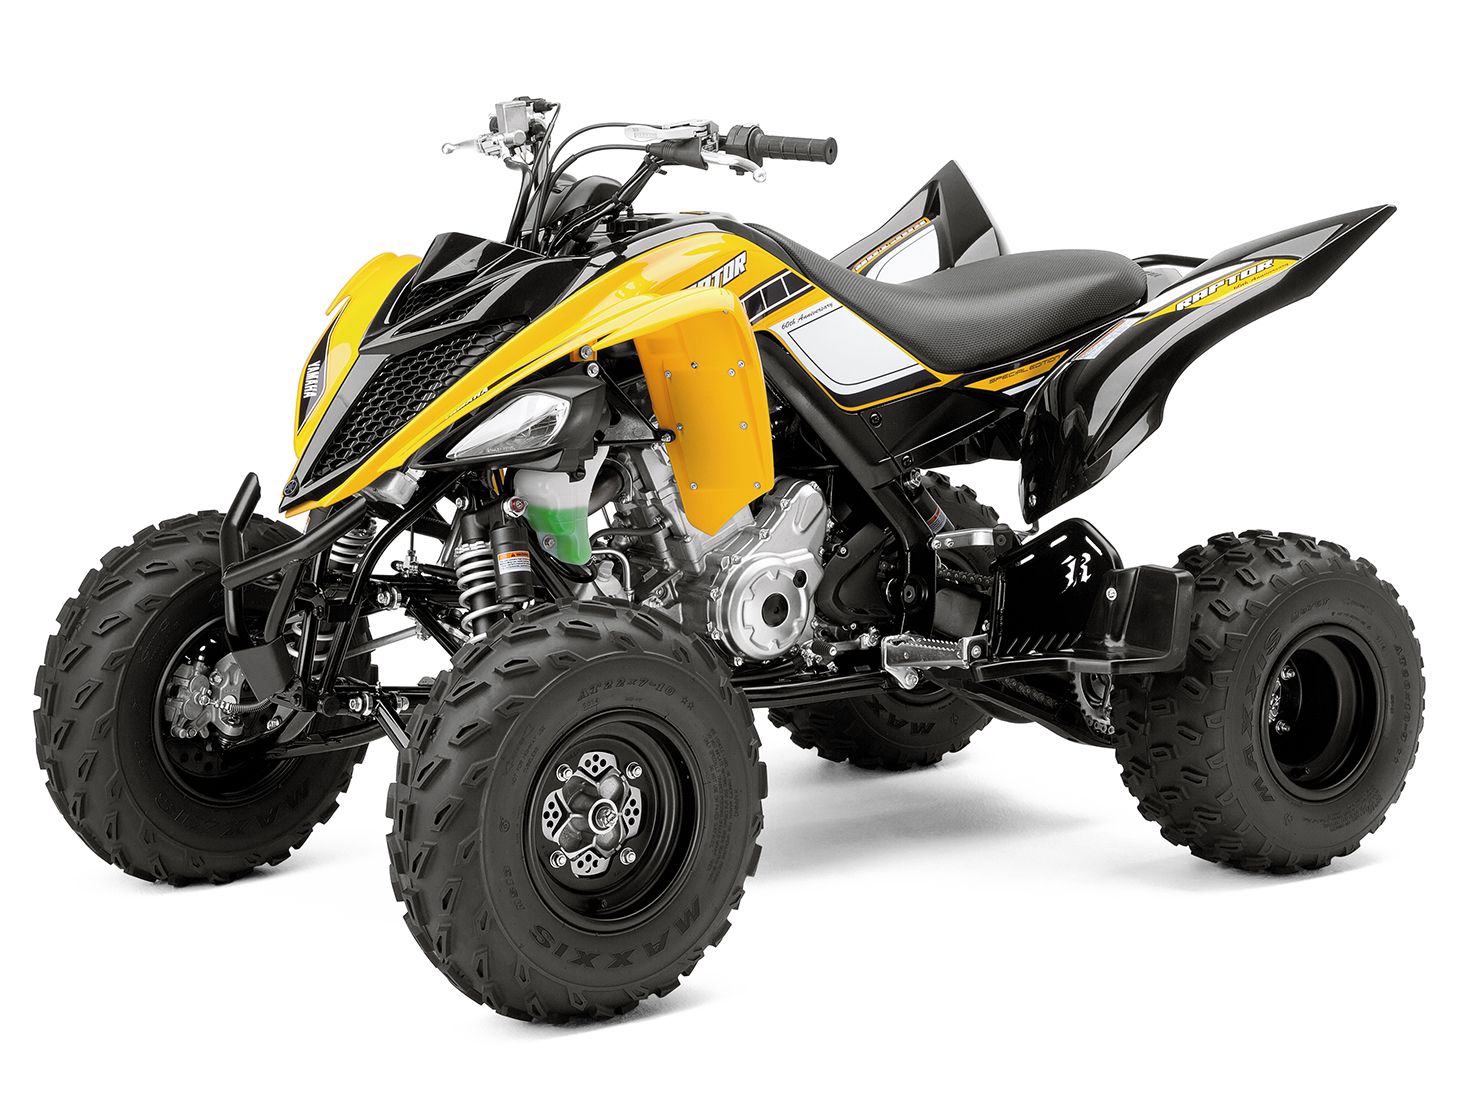 yamaha atv for sale. new 60th anniversary special edition raptor 700r and yfz450r sport atvs. yamaha is celebrating its 60th anniversary this year with classic yellow atv for sale